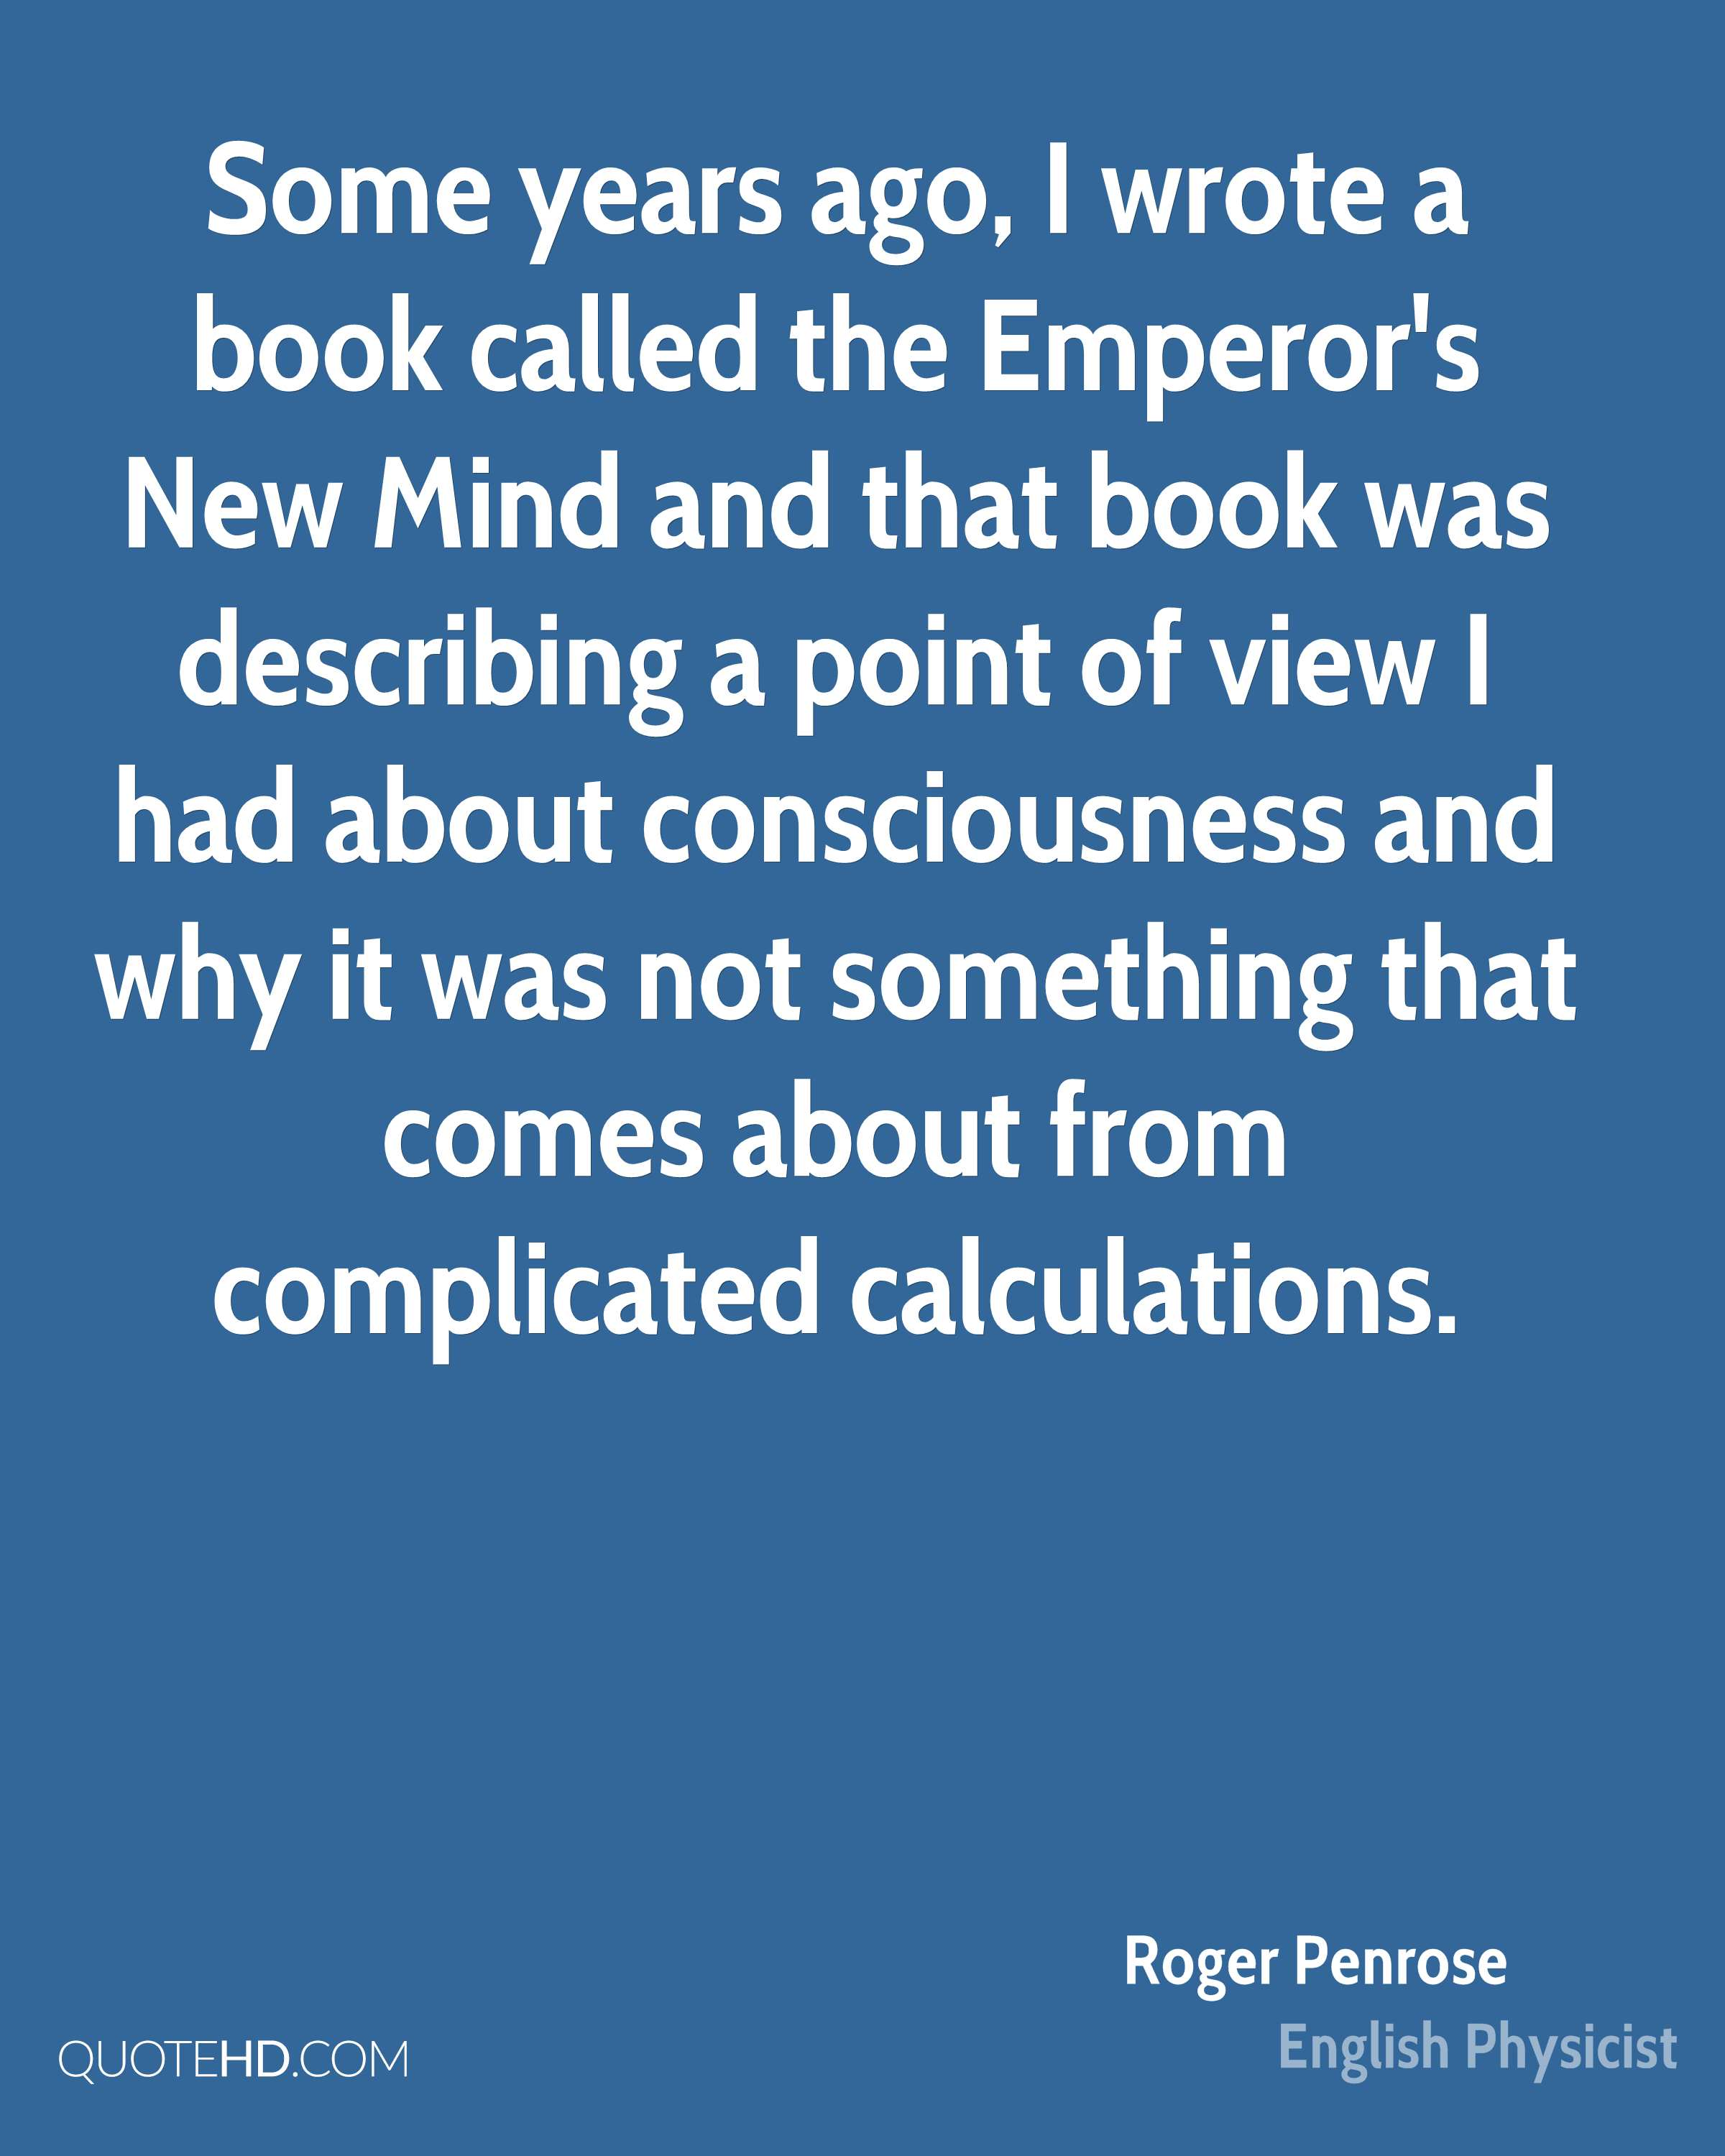 Some years ago, I wrote a book called the Emperor's New Mind and that book was describing a point of view I had about consciousness and why it was not something that comes about from complicated calculations.